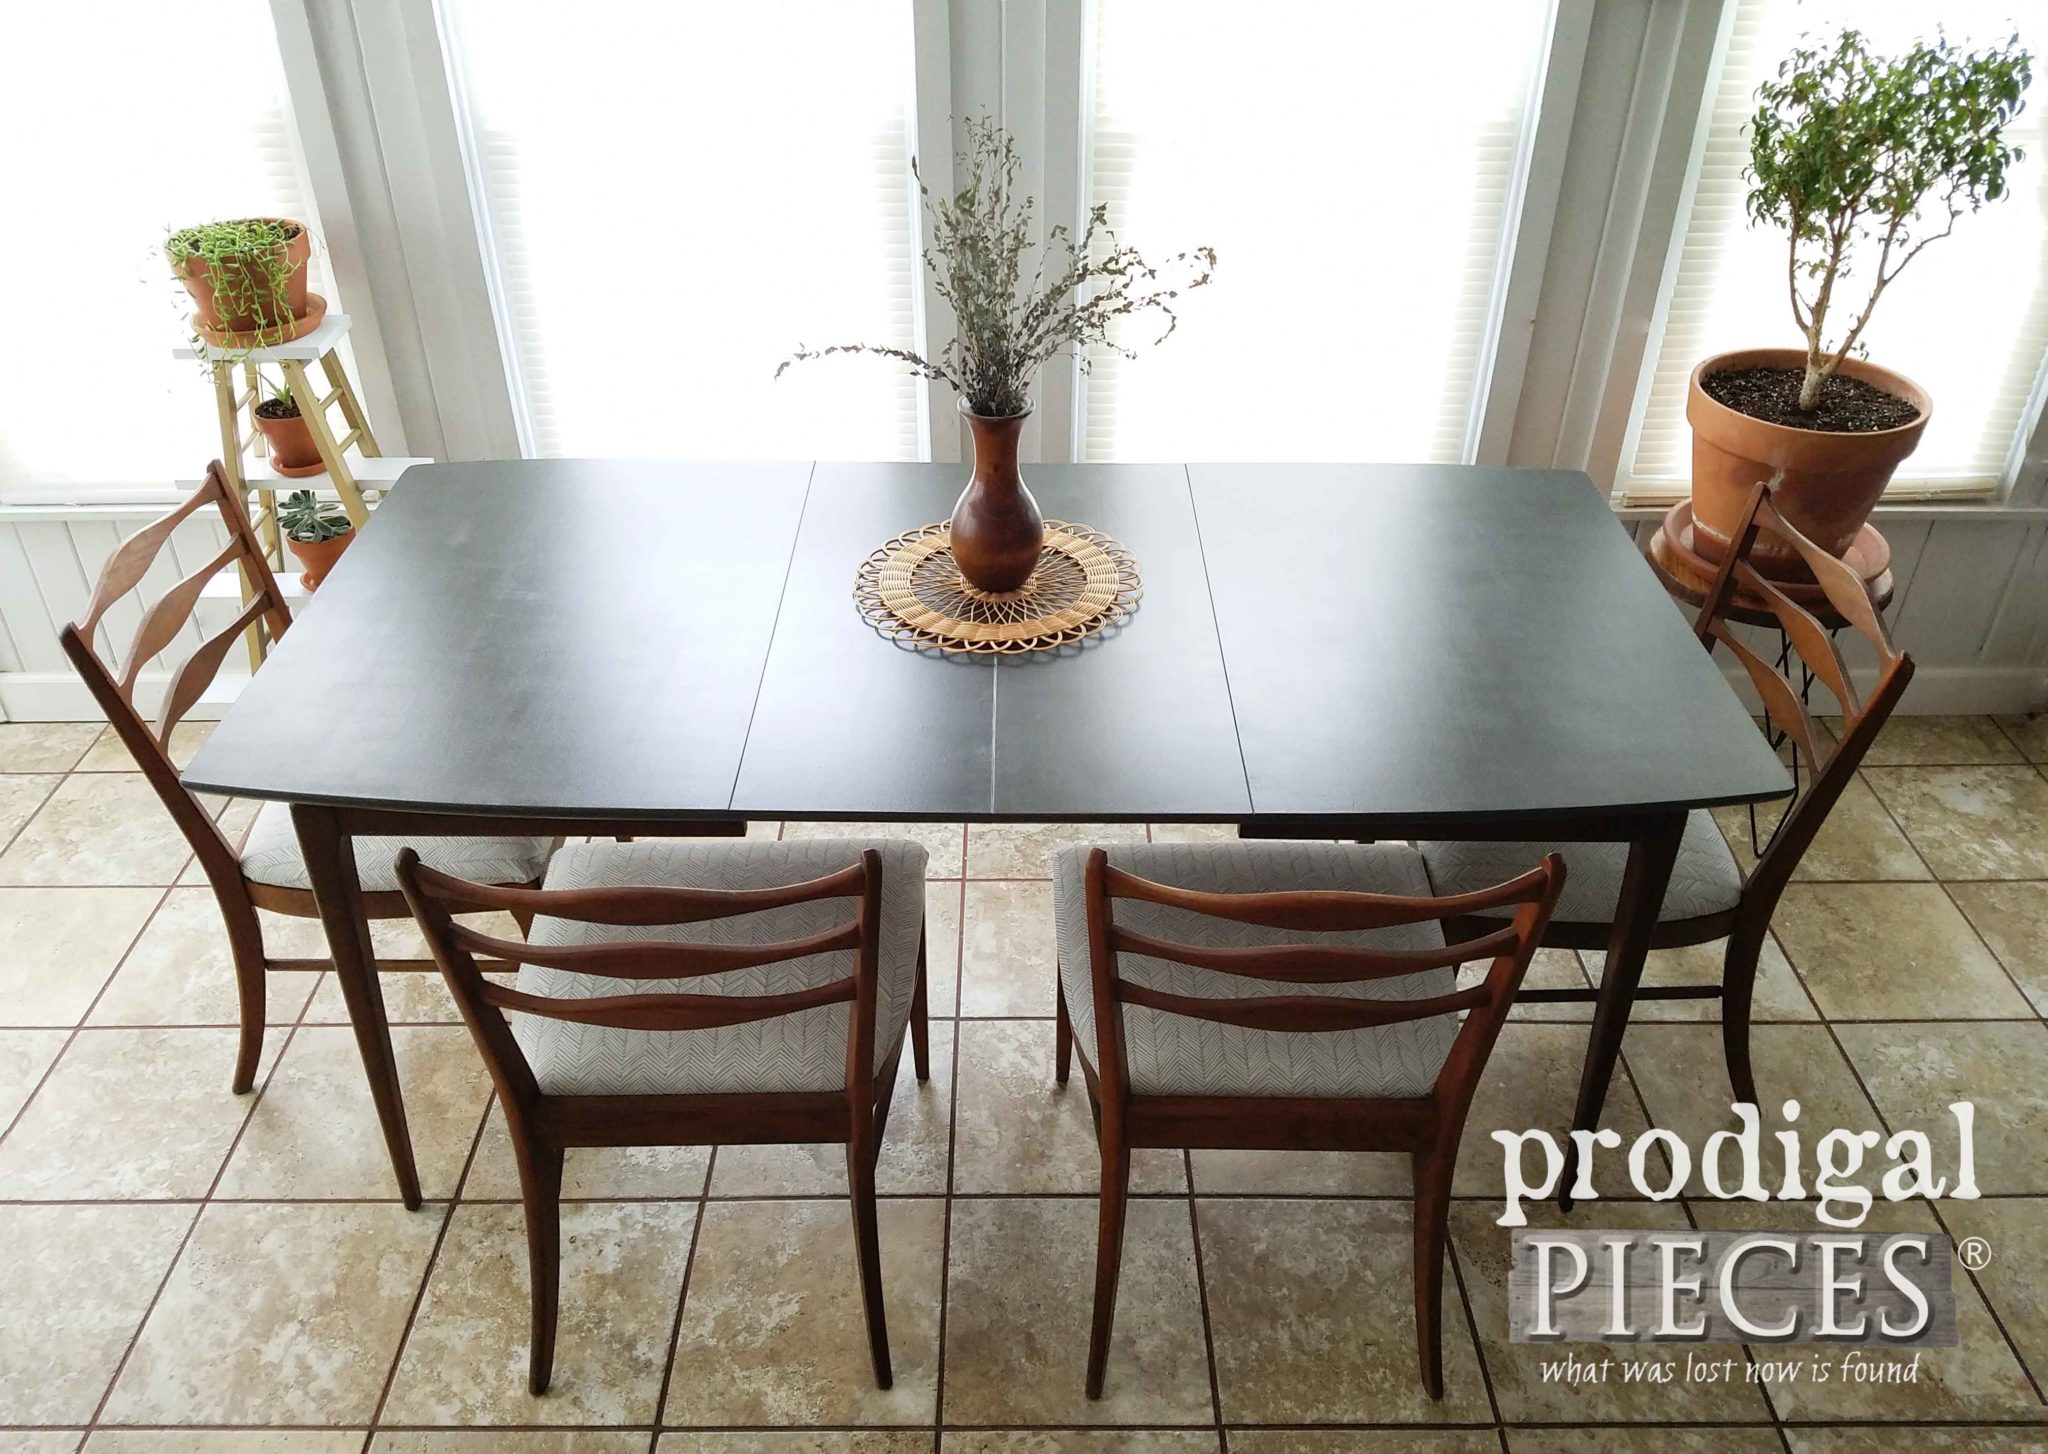 Beautiful Vintage Mid Century Modern Dining Table with Extensions by Larissa of Prodigal Pieces | prodigalpieces.com